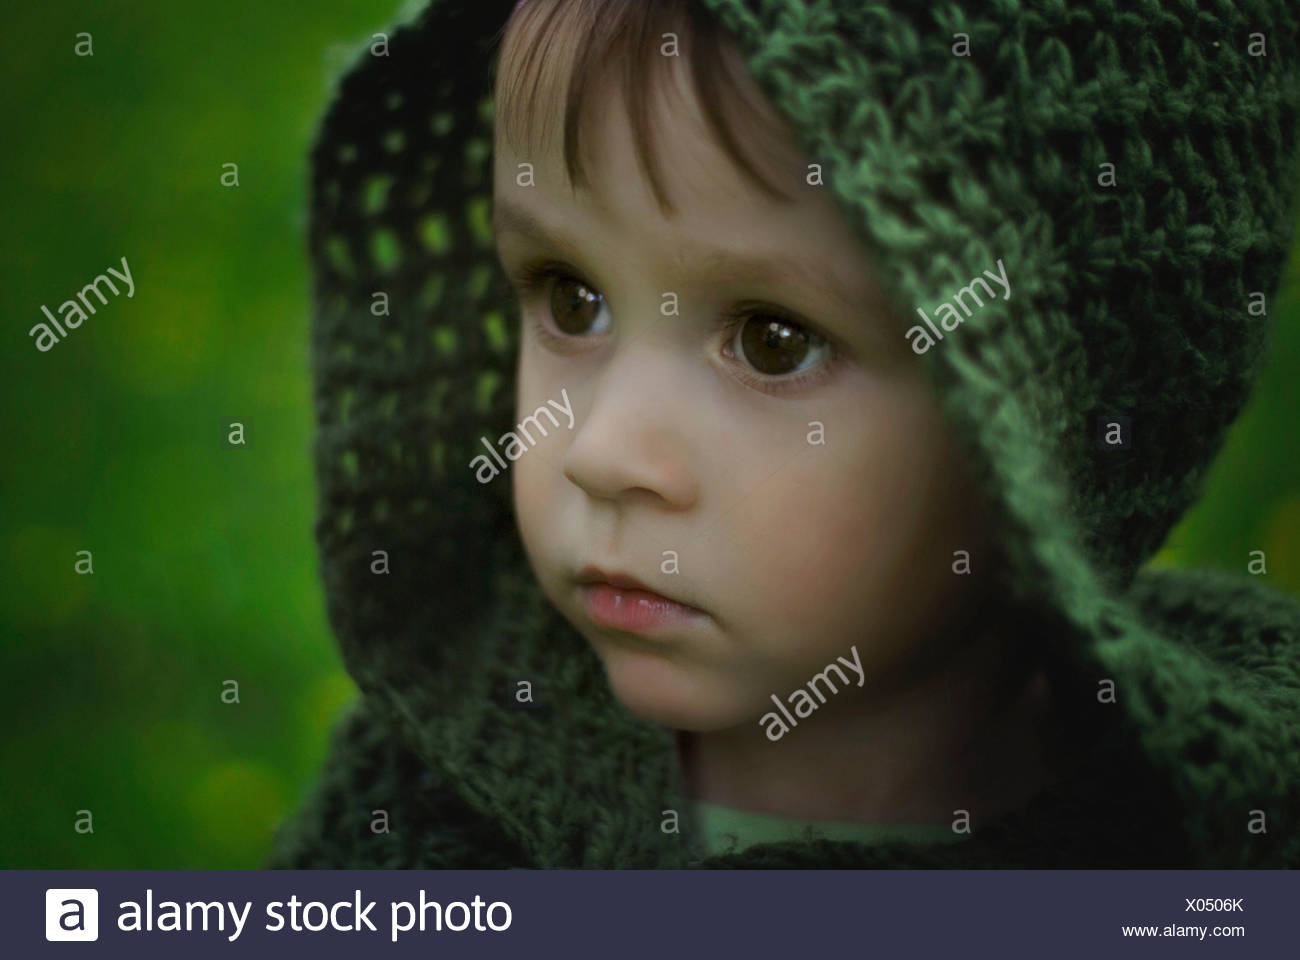 Poland, Portrait of baby boy in green hood - Stock Image